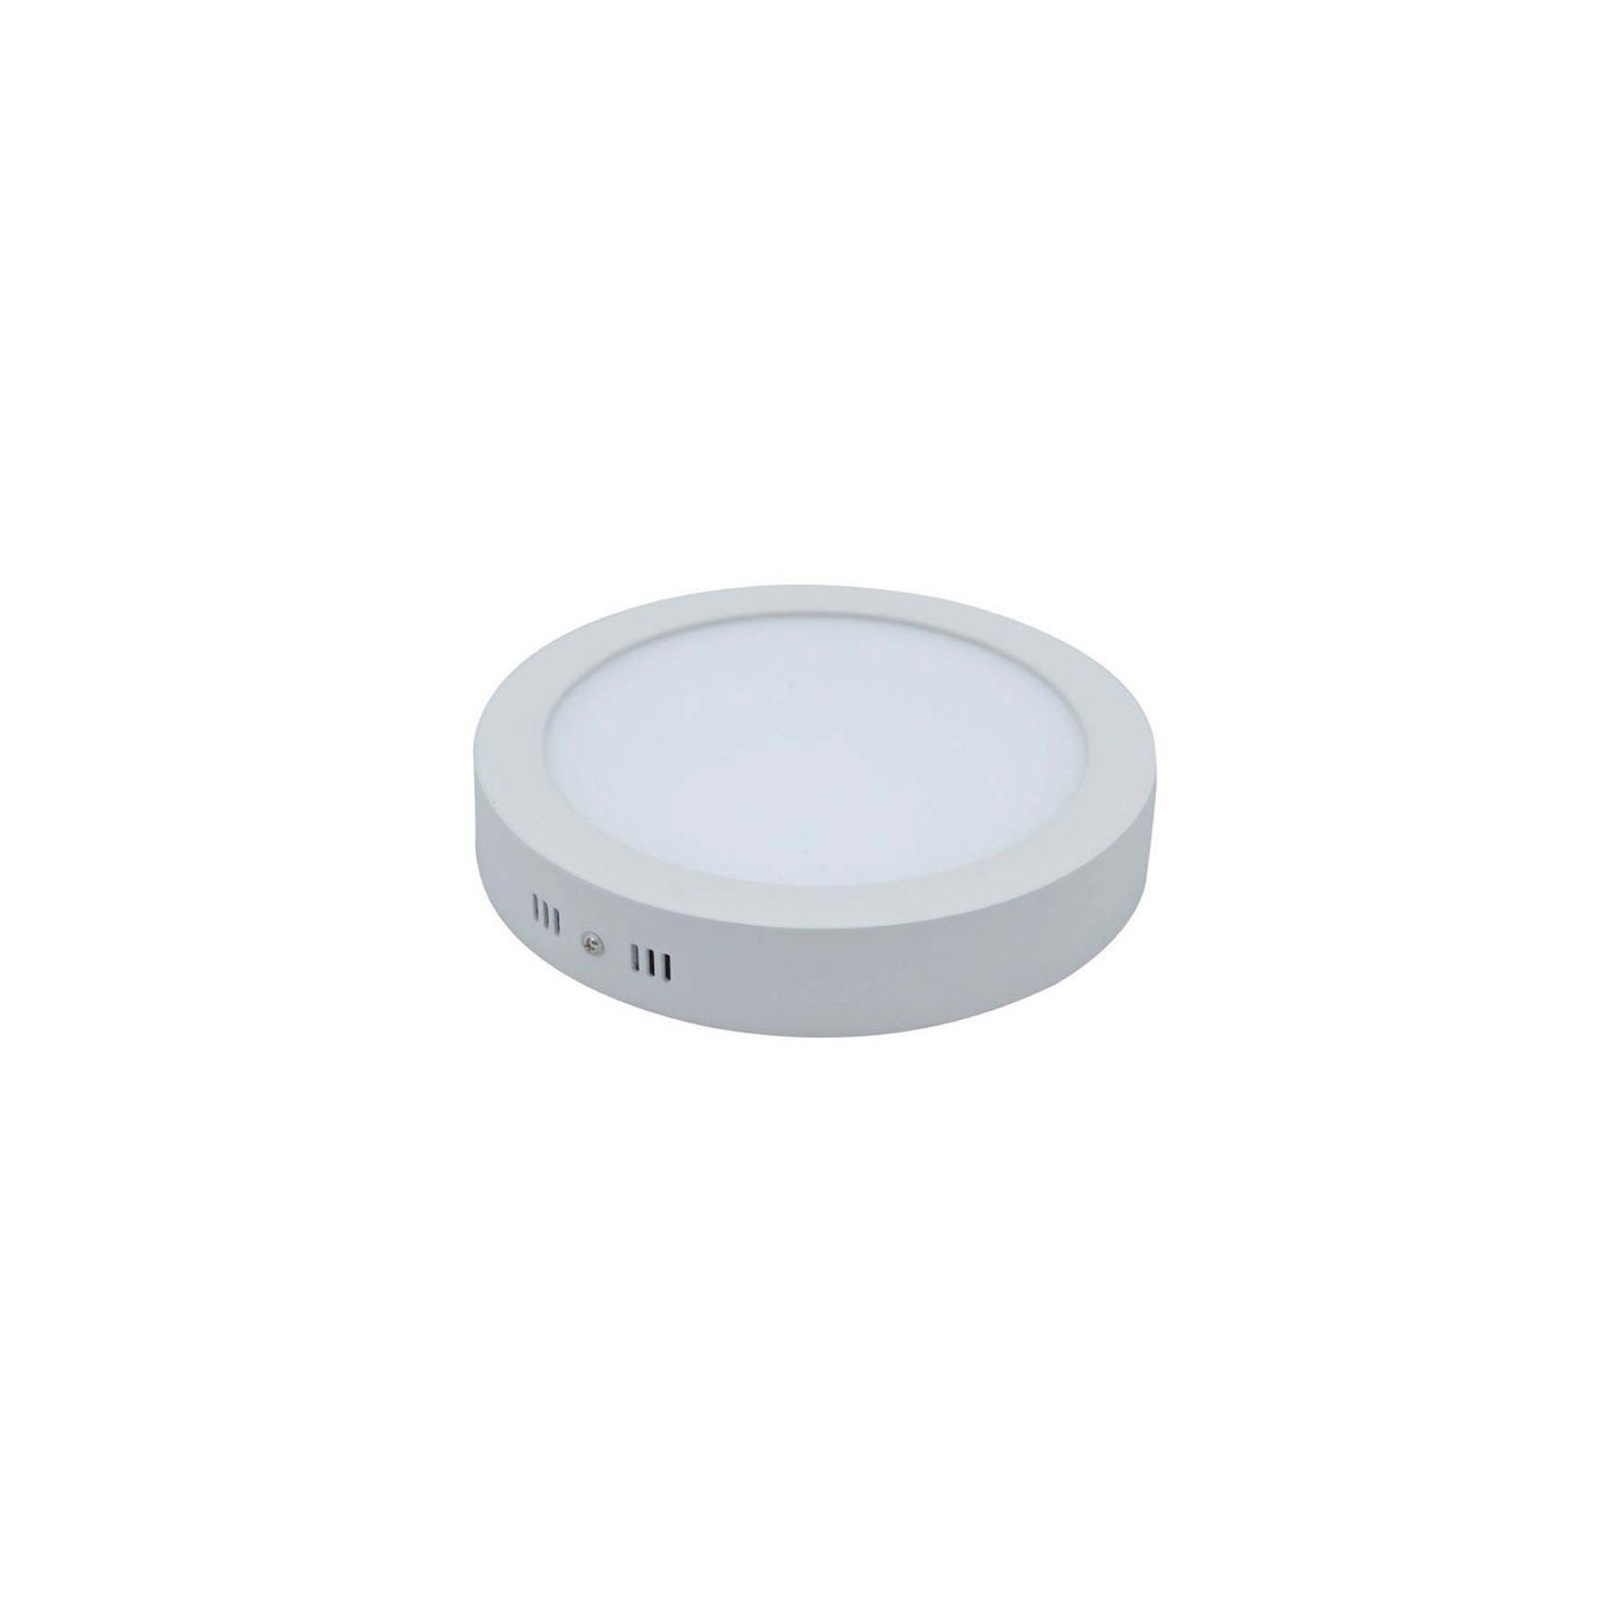 HUBLOT LED 12W ROND BLANC FROID INTERIEUR IP20